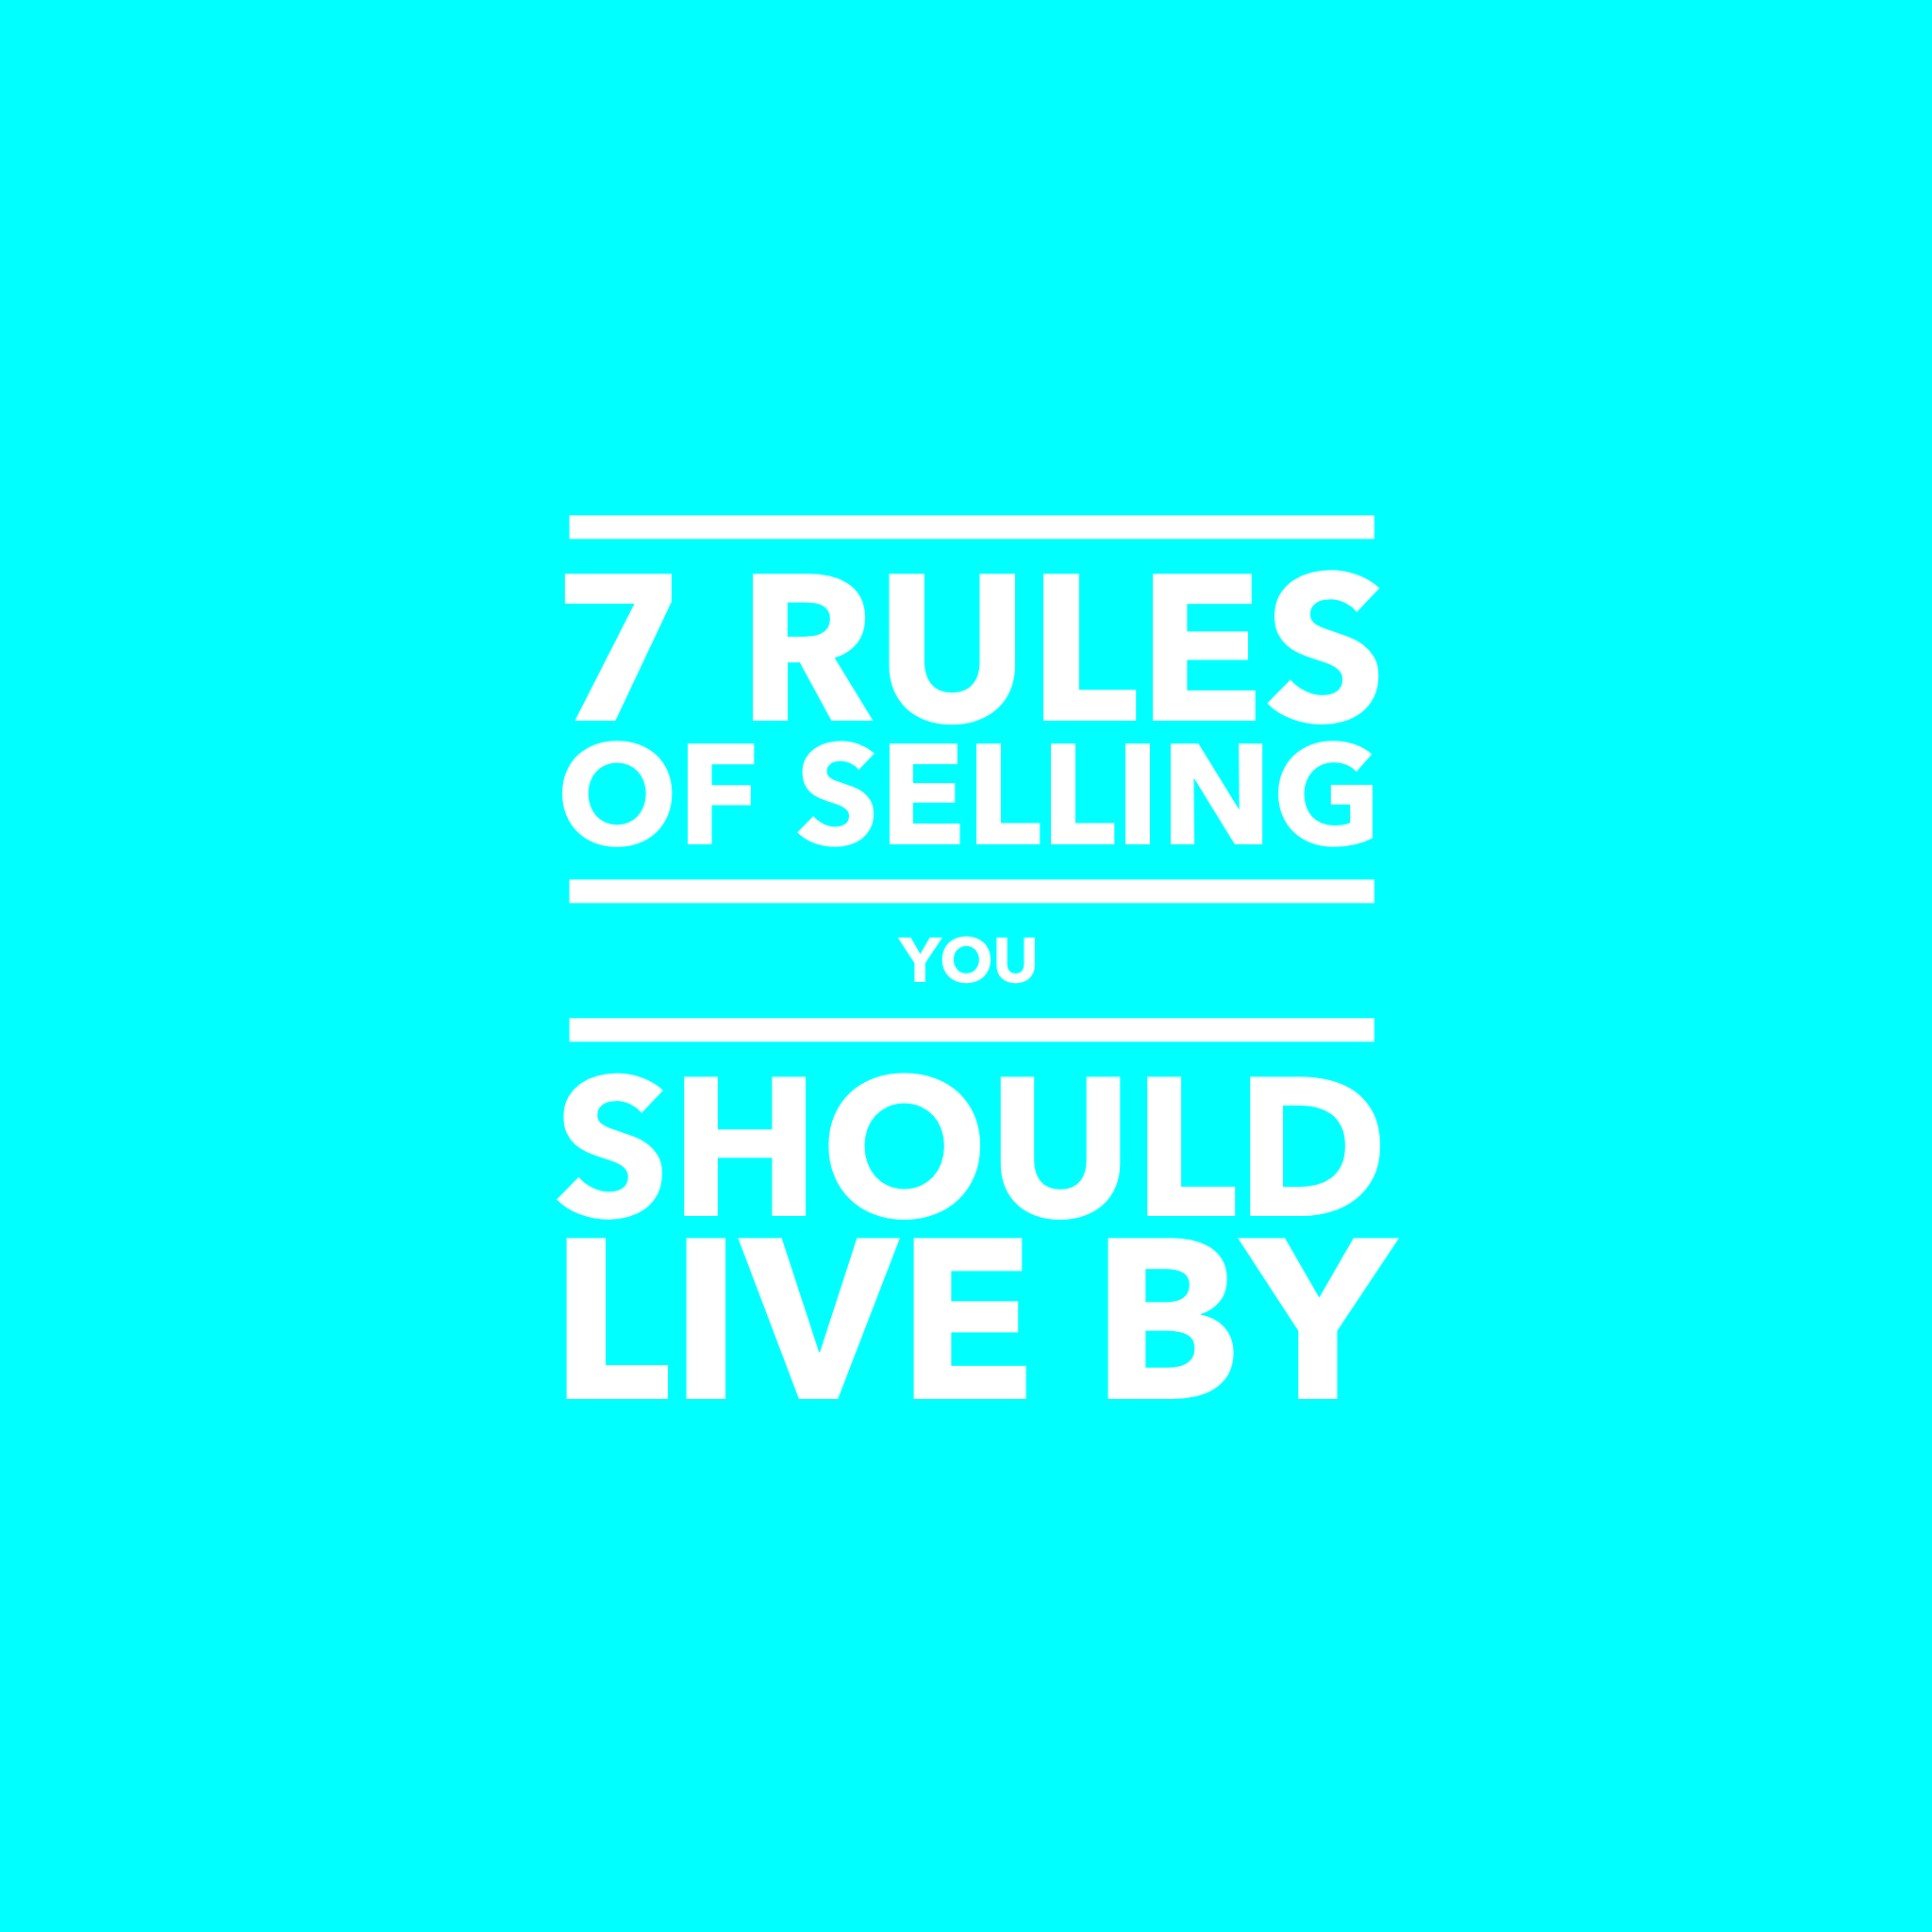 7 Rules of Selling You Should Live By